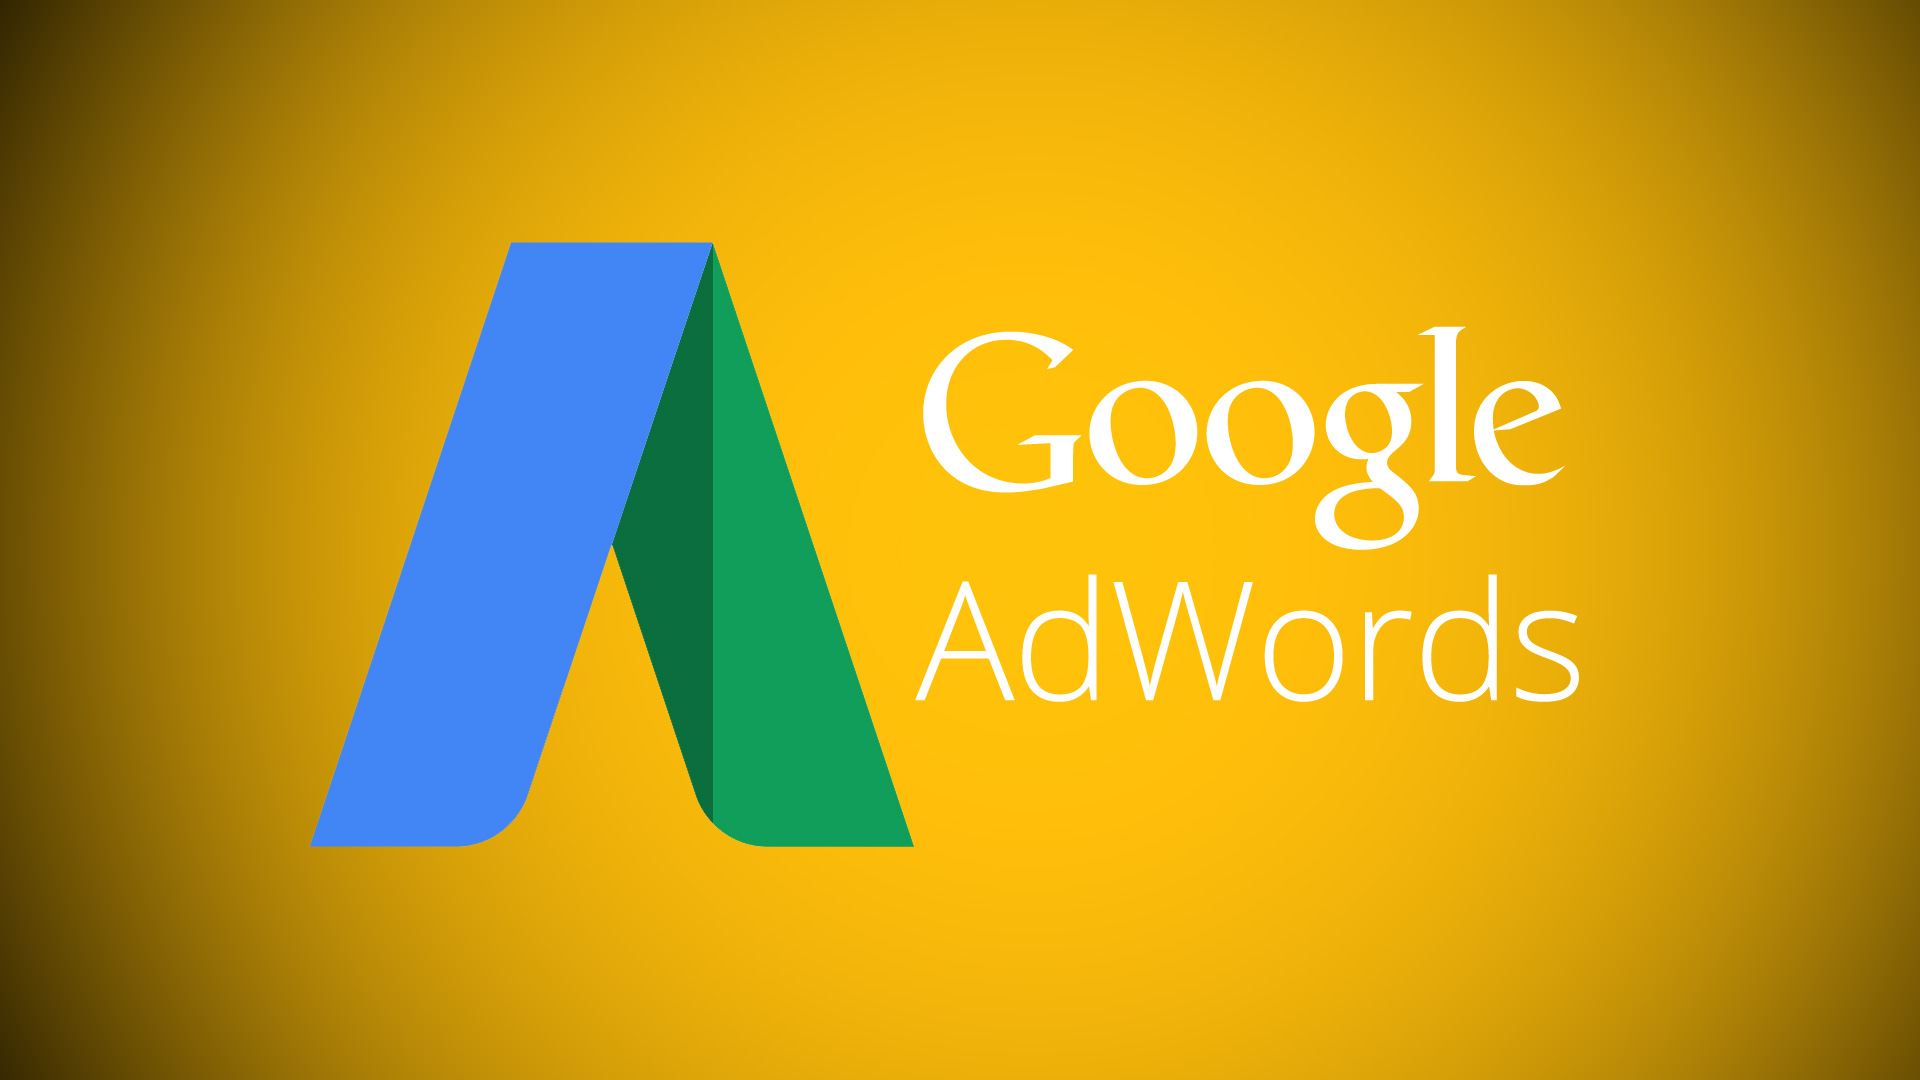 give you 75 usd or 75 auro Google ADWORDS voucher, google coupon